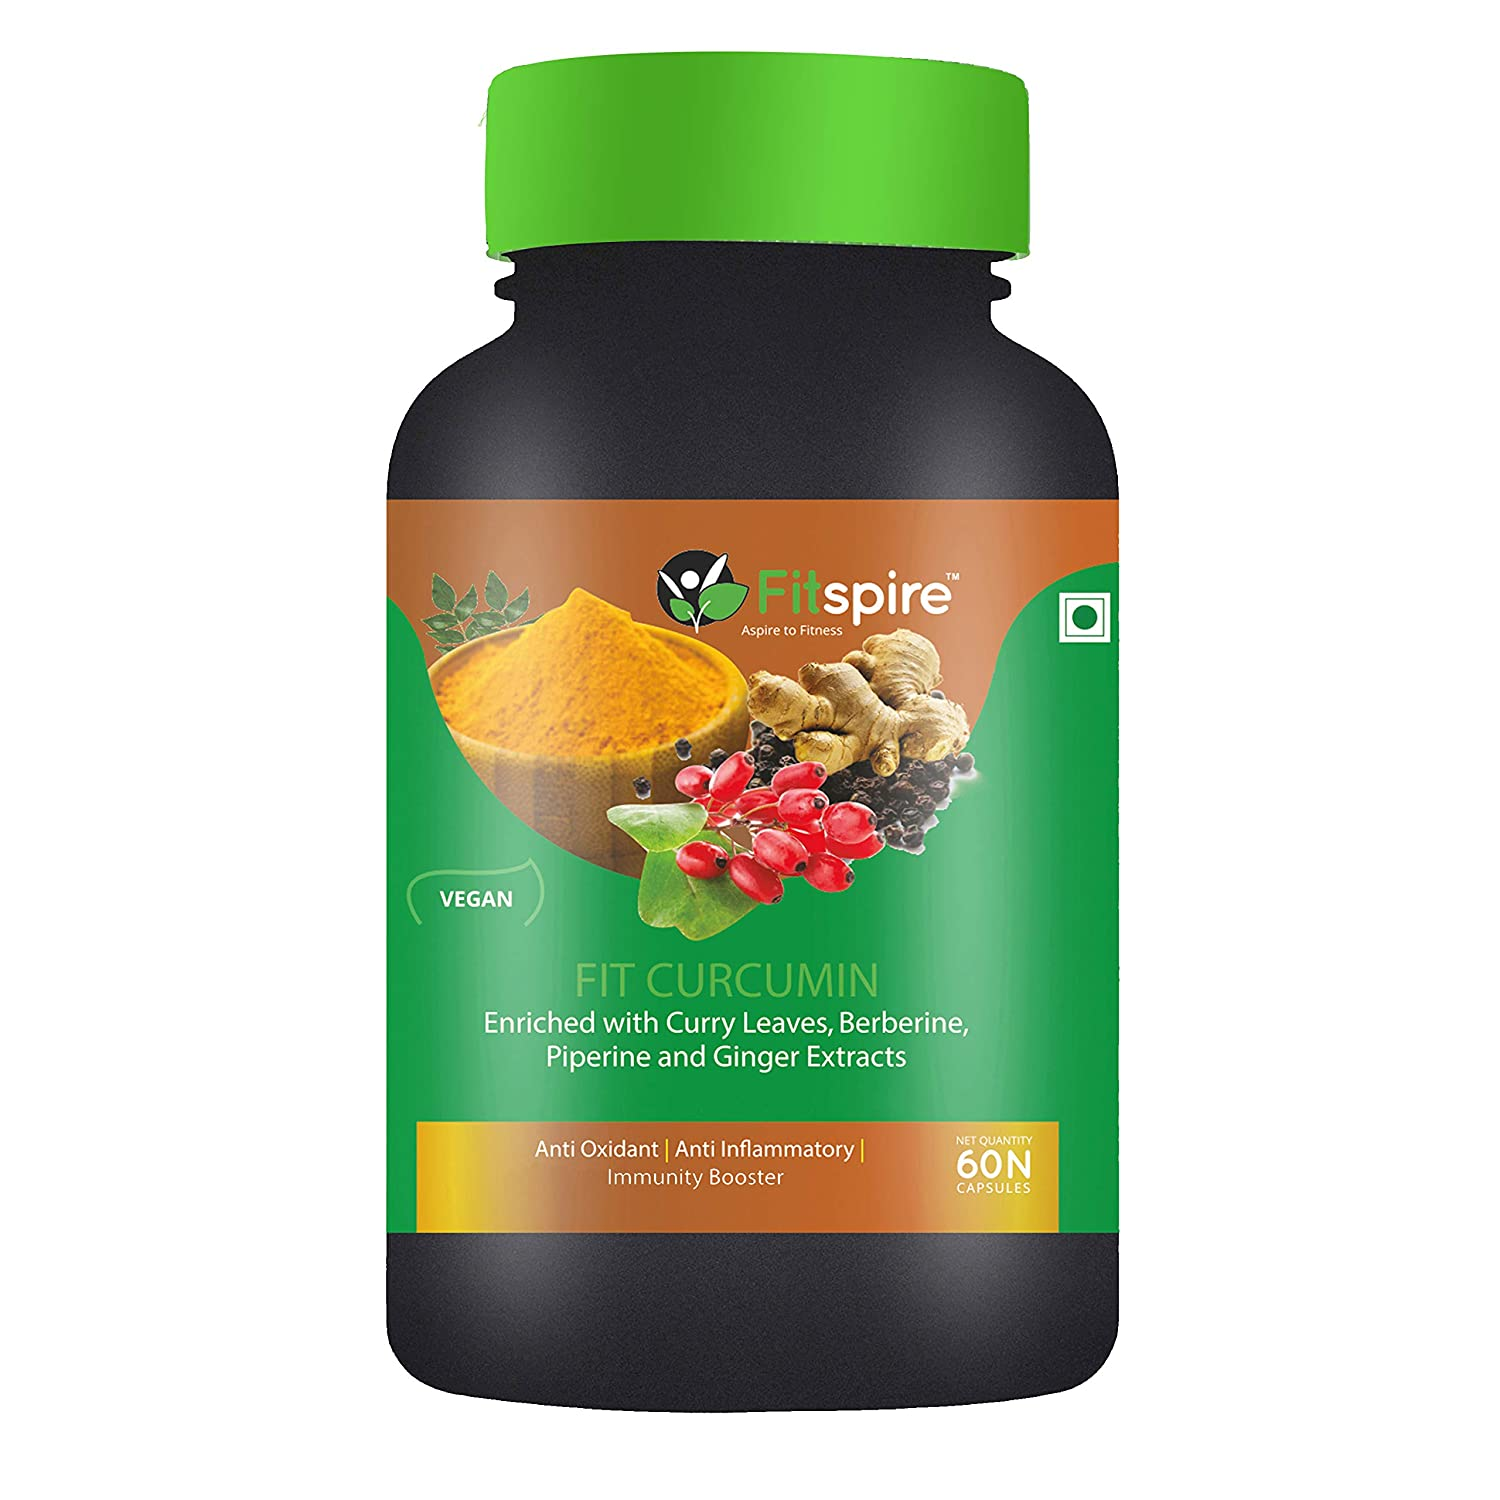 Fitspire Fit Curcumin | | Enriched With Curcuminoids, Curry Leaves, Berberine, Piperine & Ginger Extracts - 60 Capsules